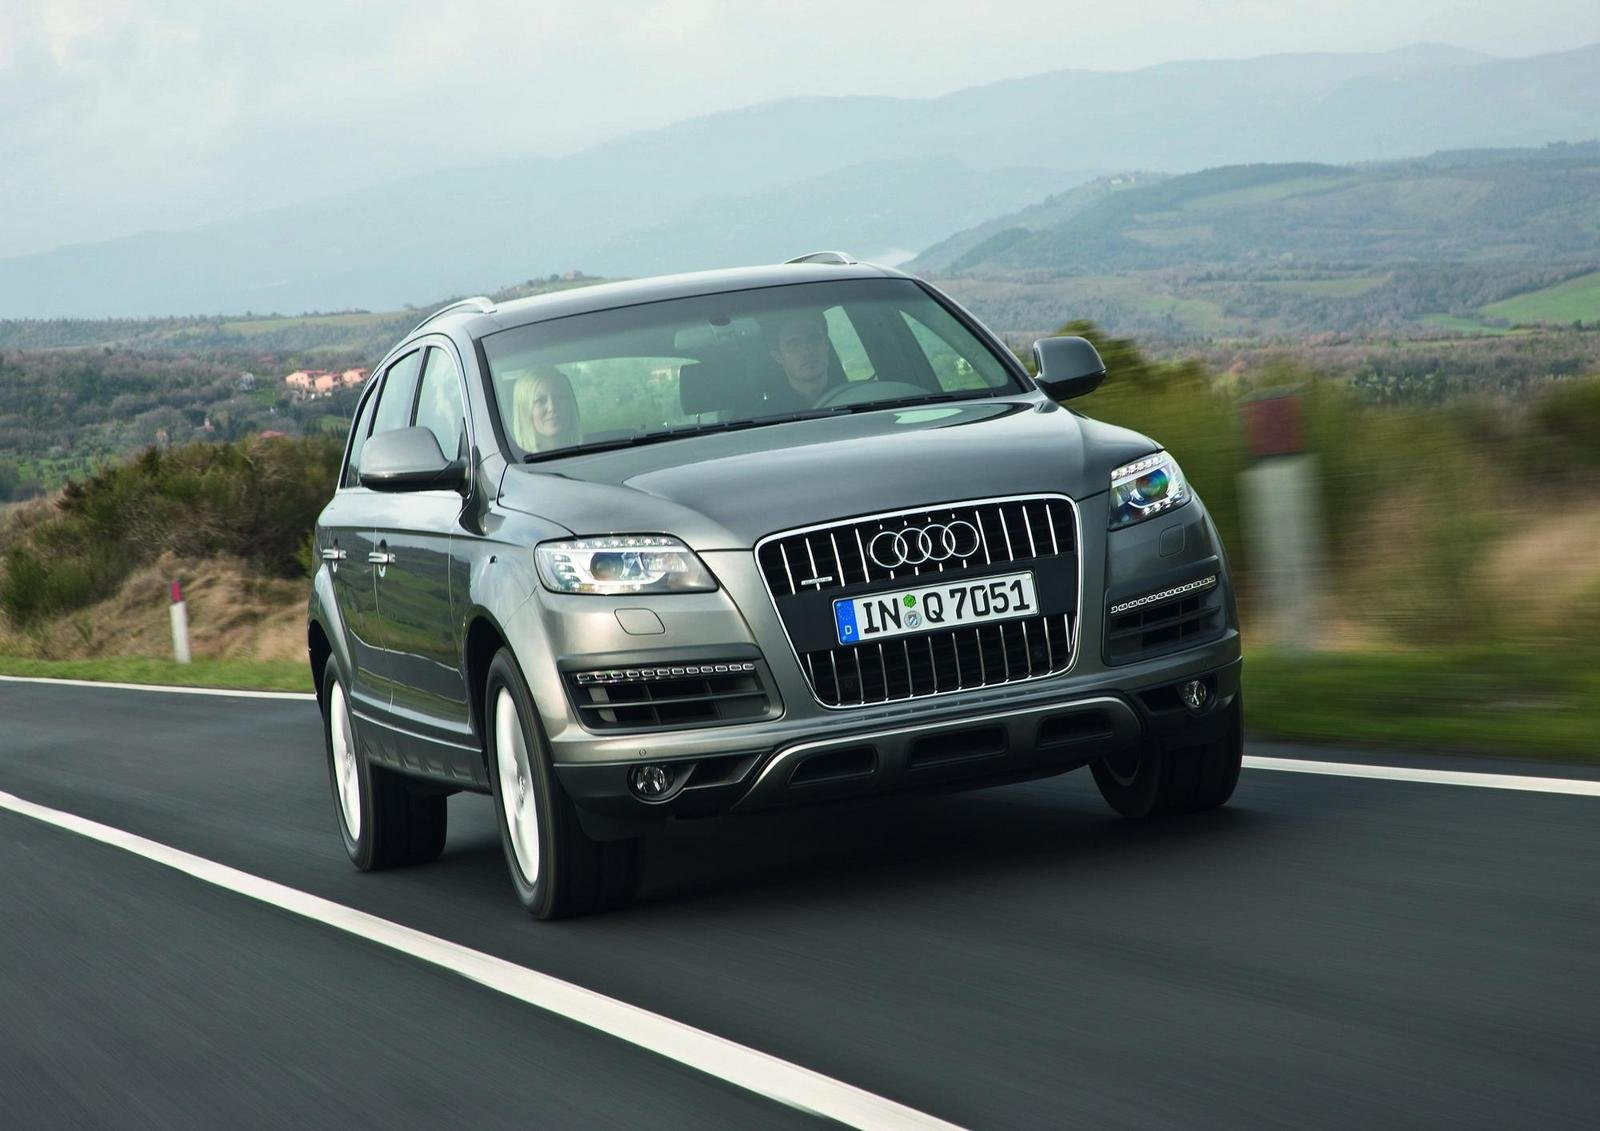 2010 audi q7 picture 295927 car review top speed. Black Bedroom Furniture Sets. Home Design Ideas